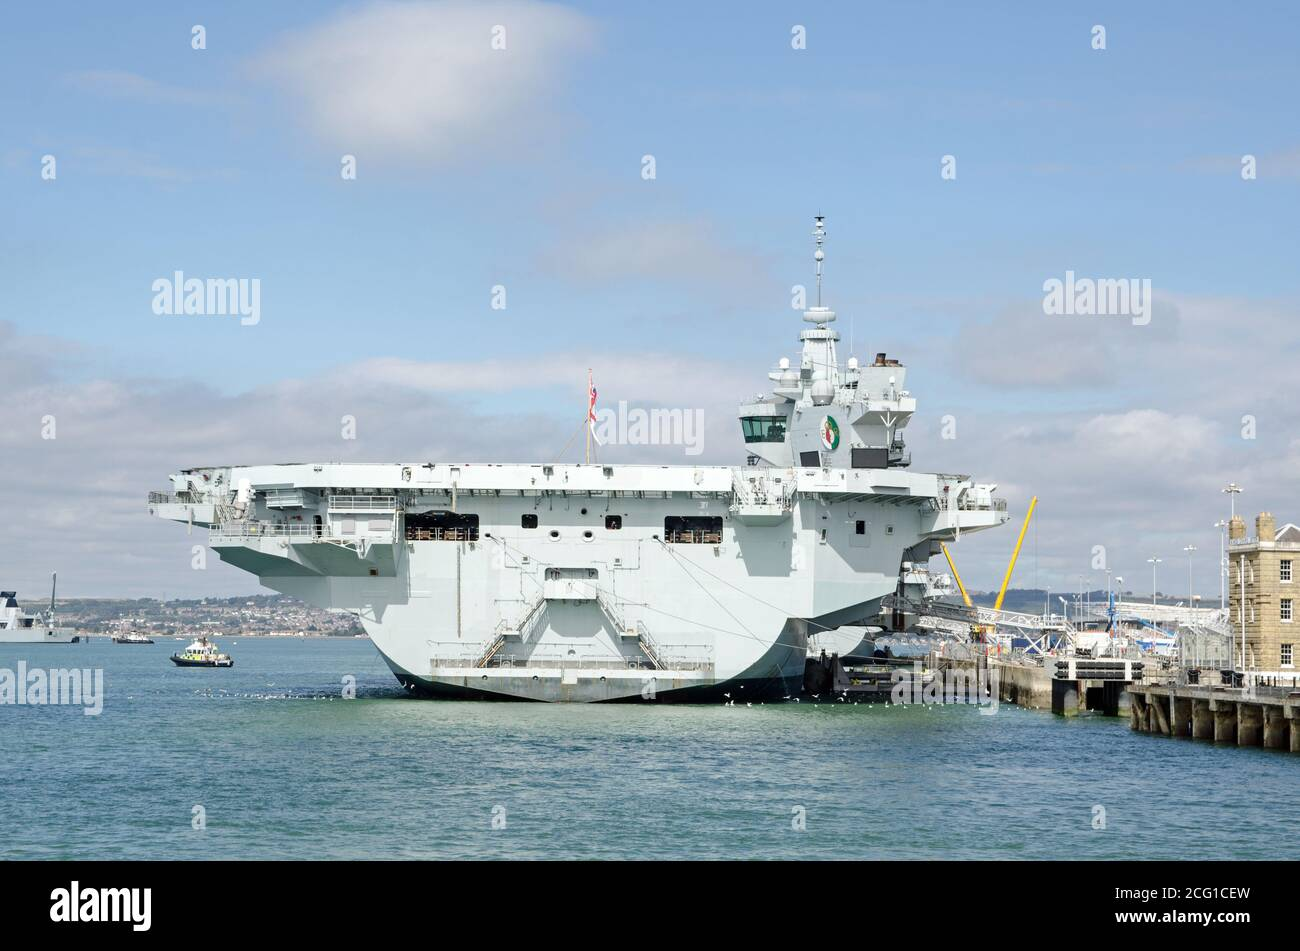 Stern of the massive Queen Elizabeth Aircraft Carrier docked at Portsmouth Harbour, Hampshire.  The Royal Navy ship is the largest in the fleet. Stock Photo